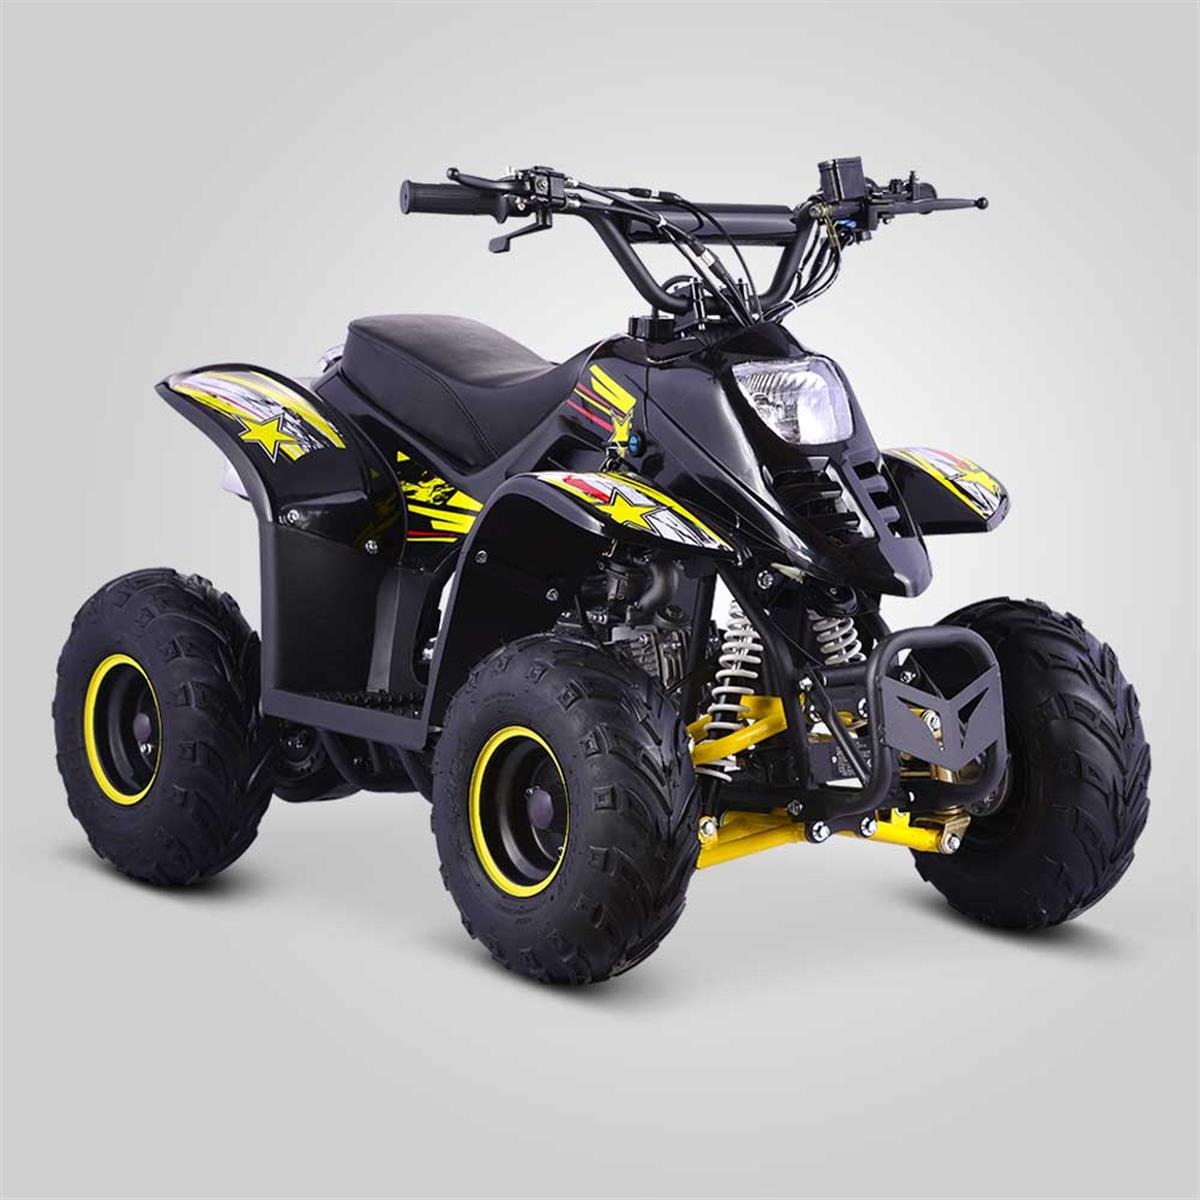 quad de loisirs 90cc diamon jaune smallmx dirt bike pit bike quads minimoto. Black Bedroom Furniture Sets. Home Design Ideas